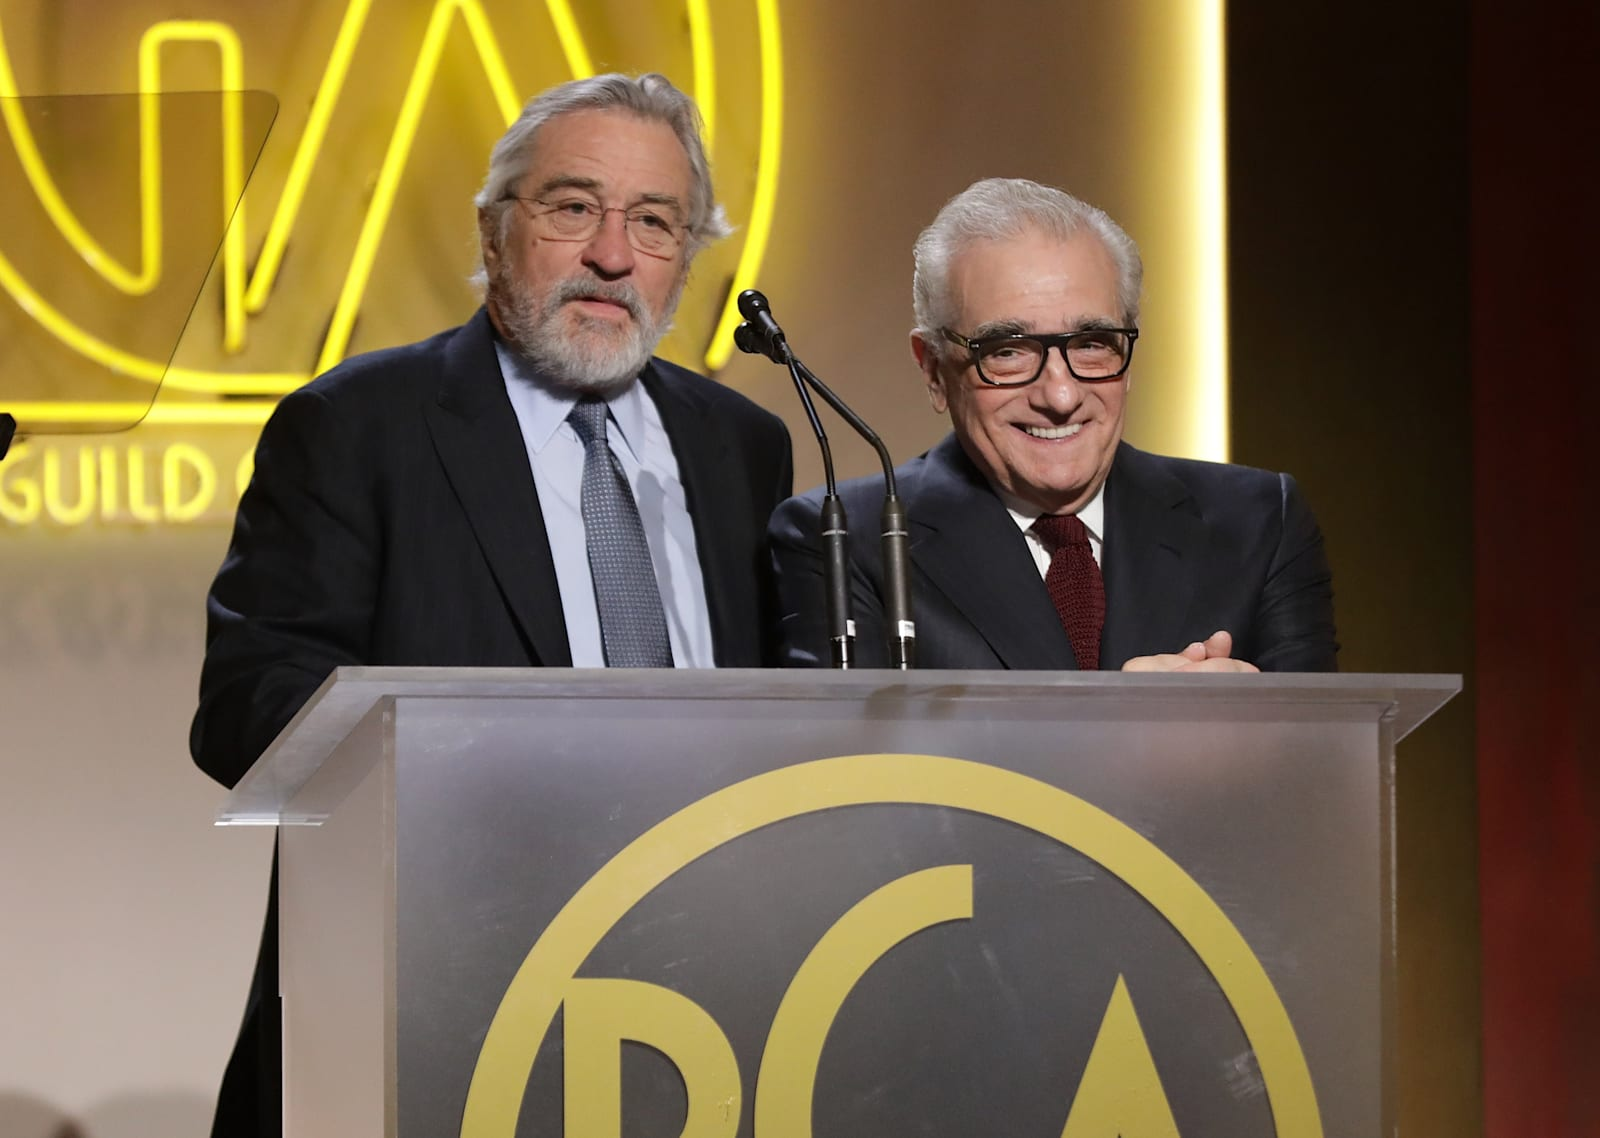 Netflix reportedly snags Martin Scorsese's 'The Irishman'